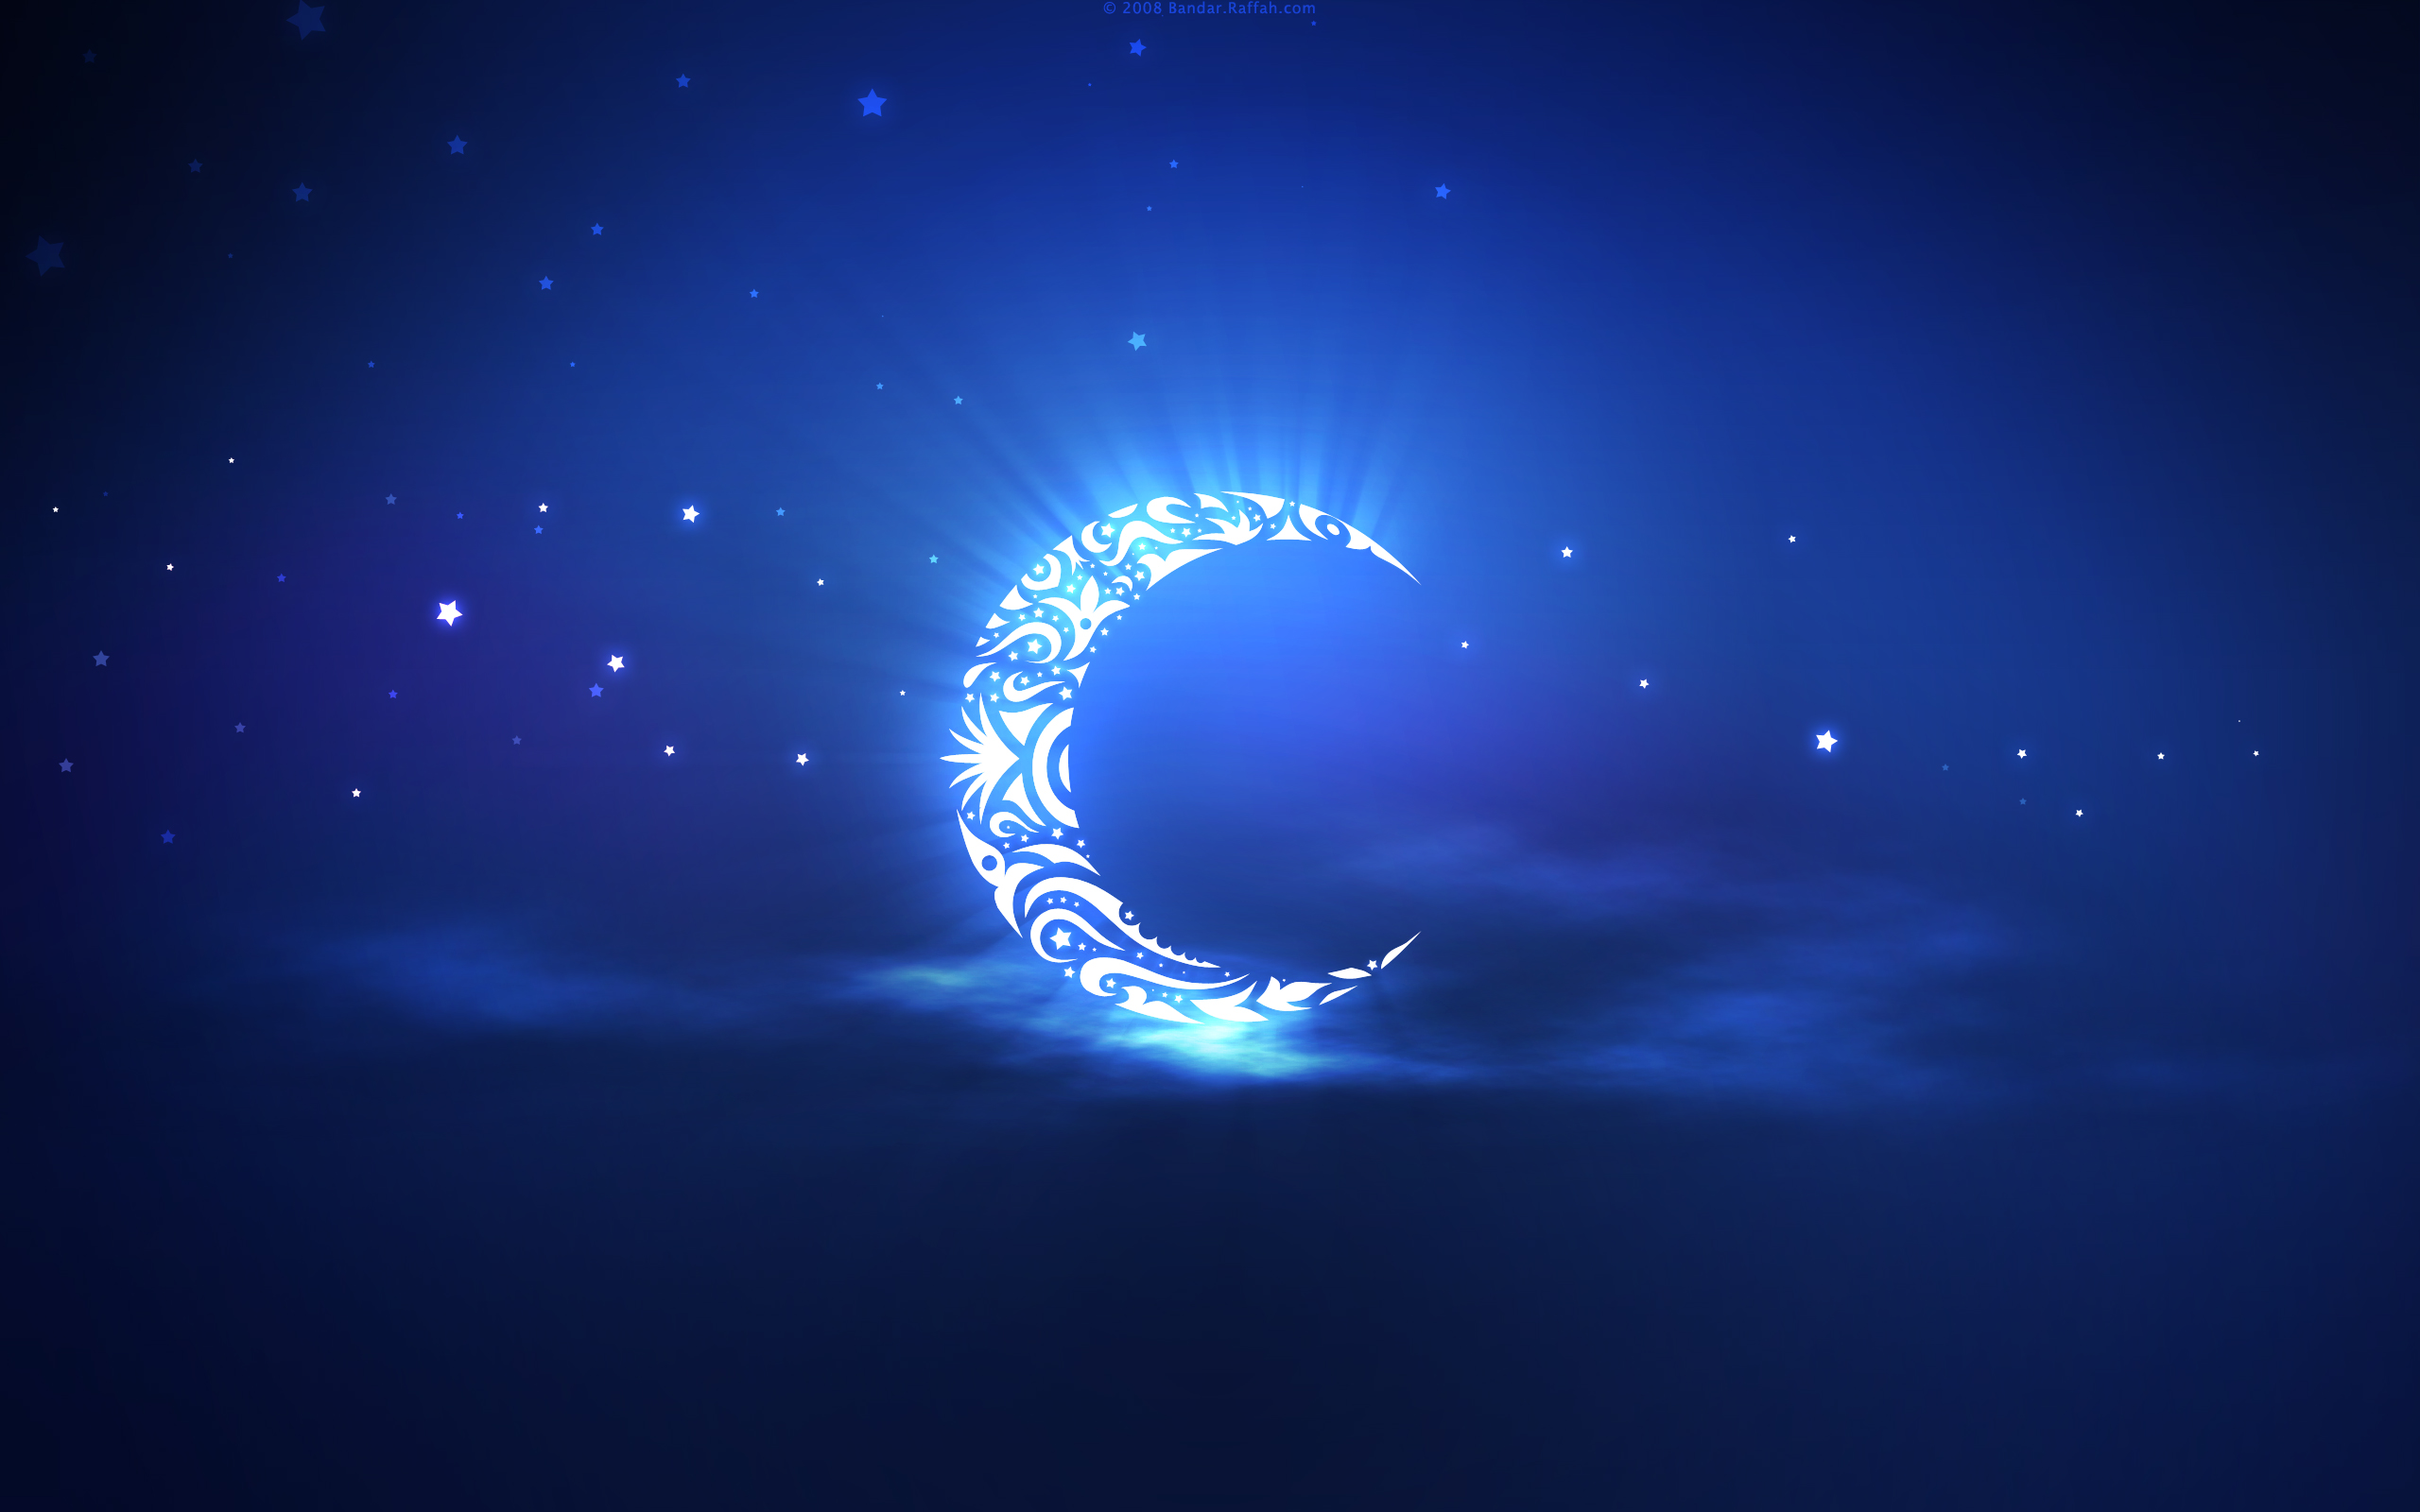 Holy Ramadan Moon 2697.84 Kb